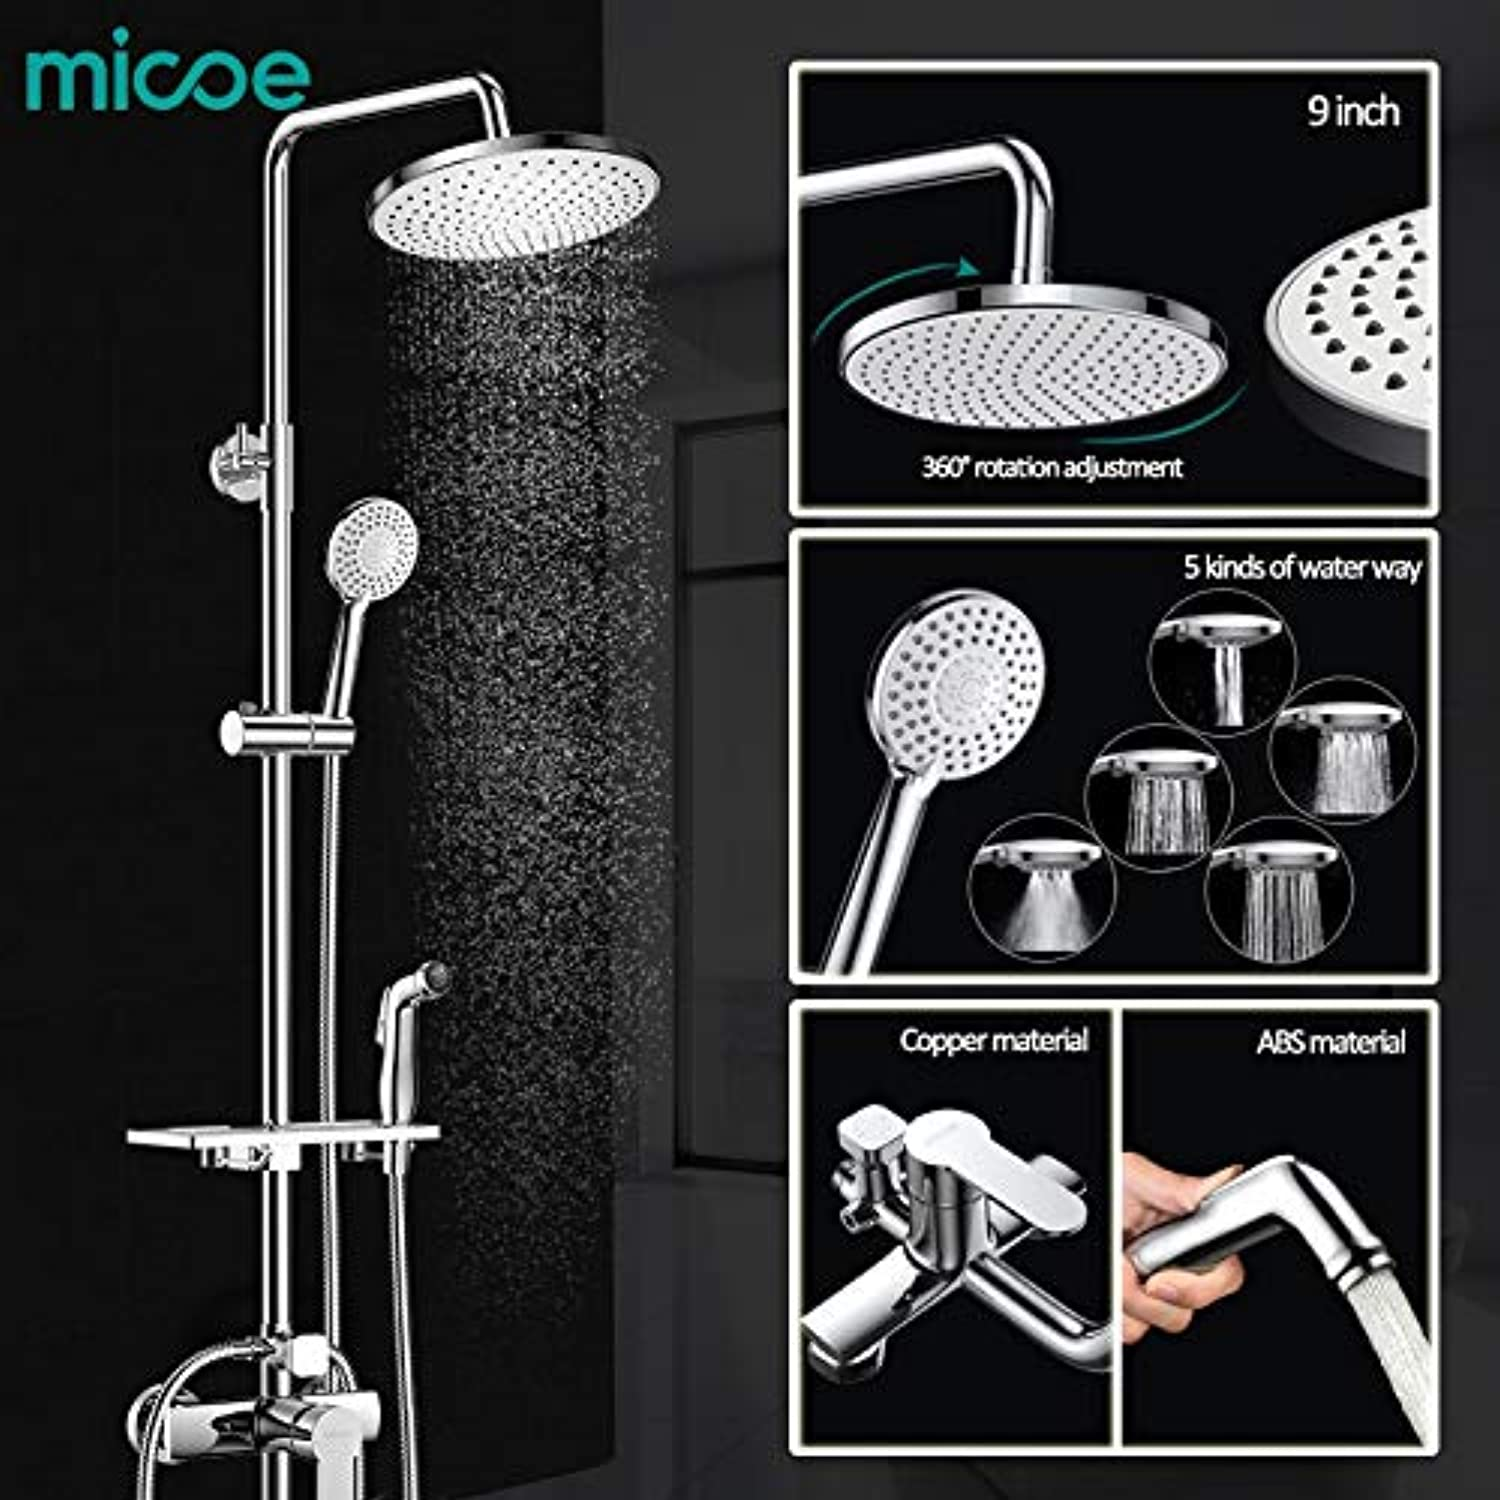 Micoe Brass Thermostatic Water Rainfall Shower Set Faucet + Tub Mixer Tap + Handheld Shower Wall +damen wash faucet M-A0082,Weiß